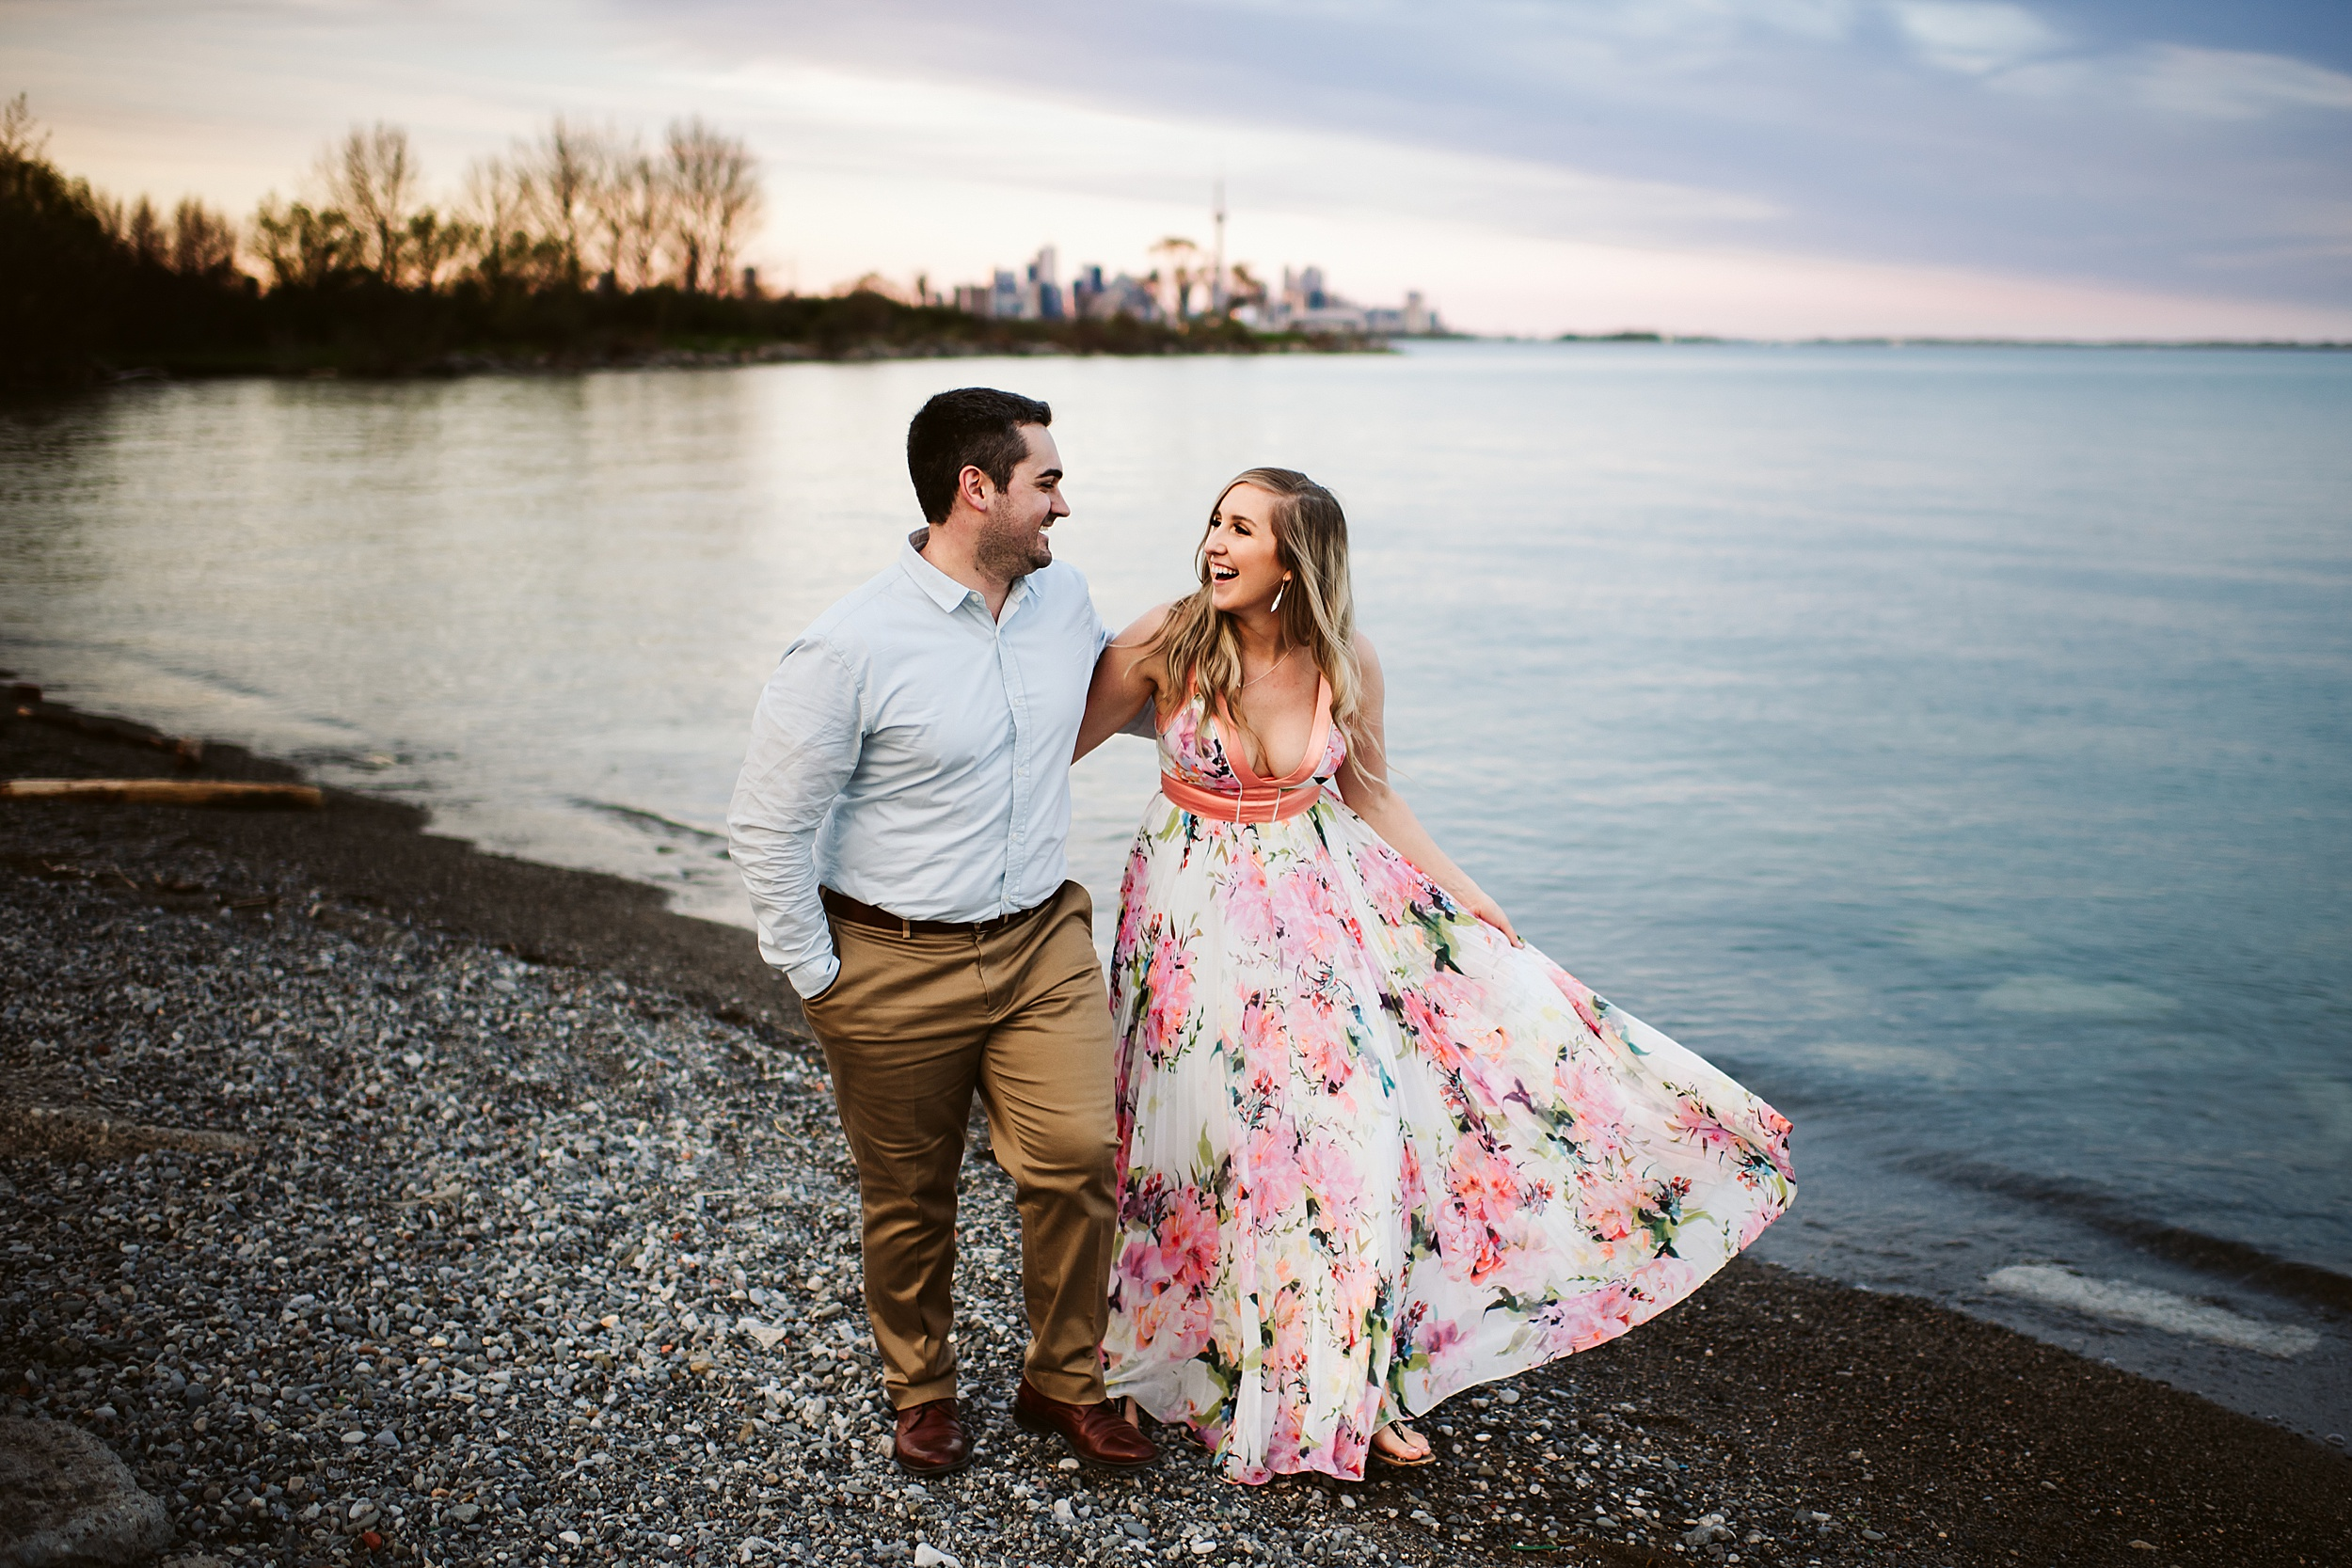 Humber Bay Park Engagement shoot